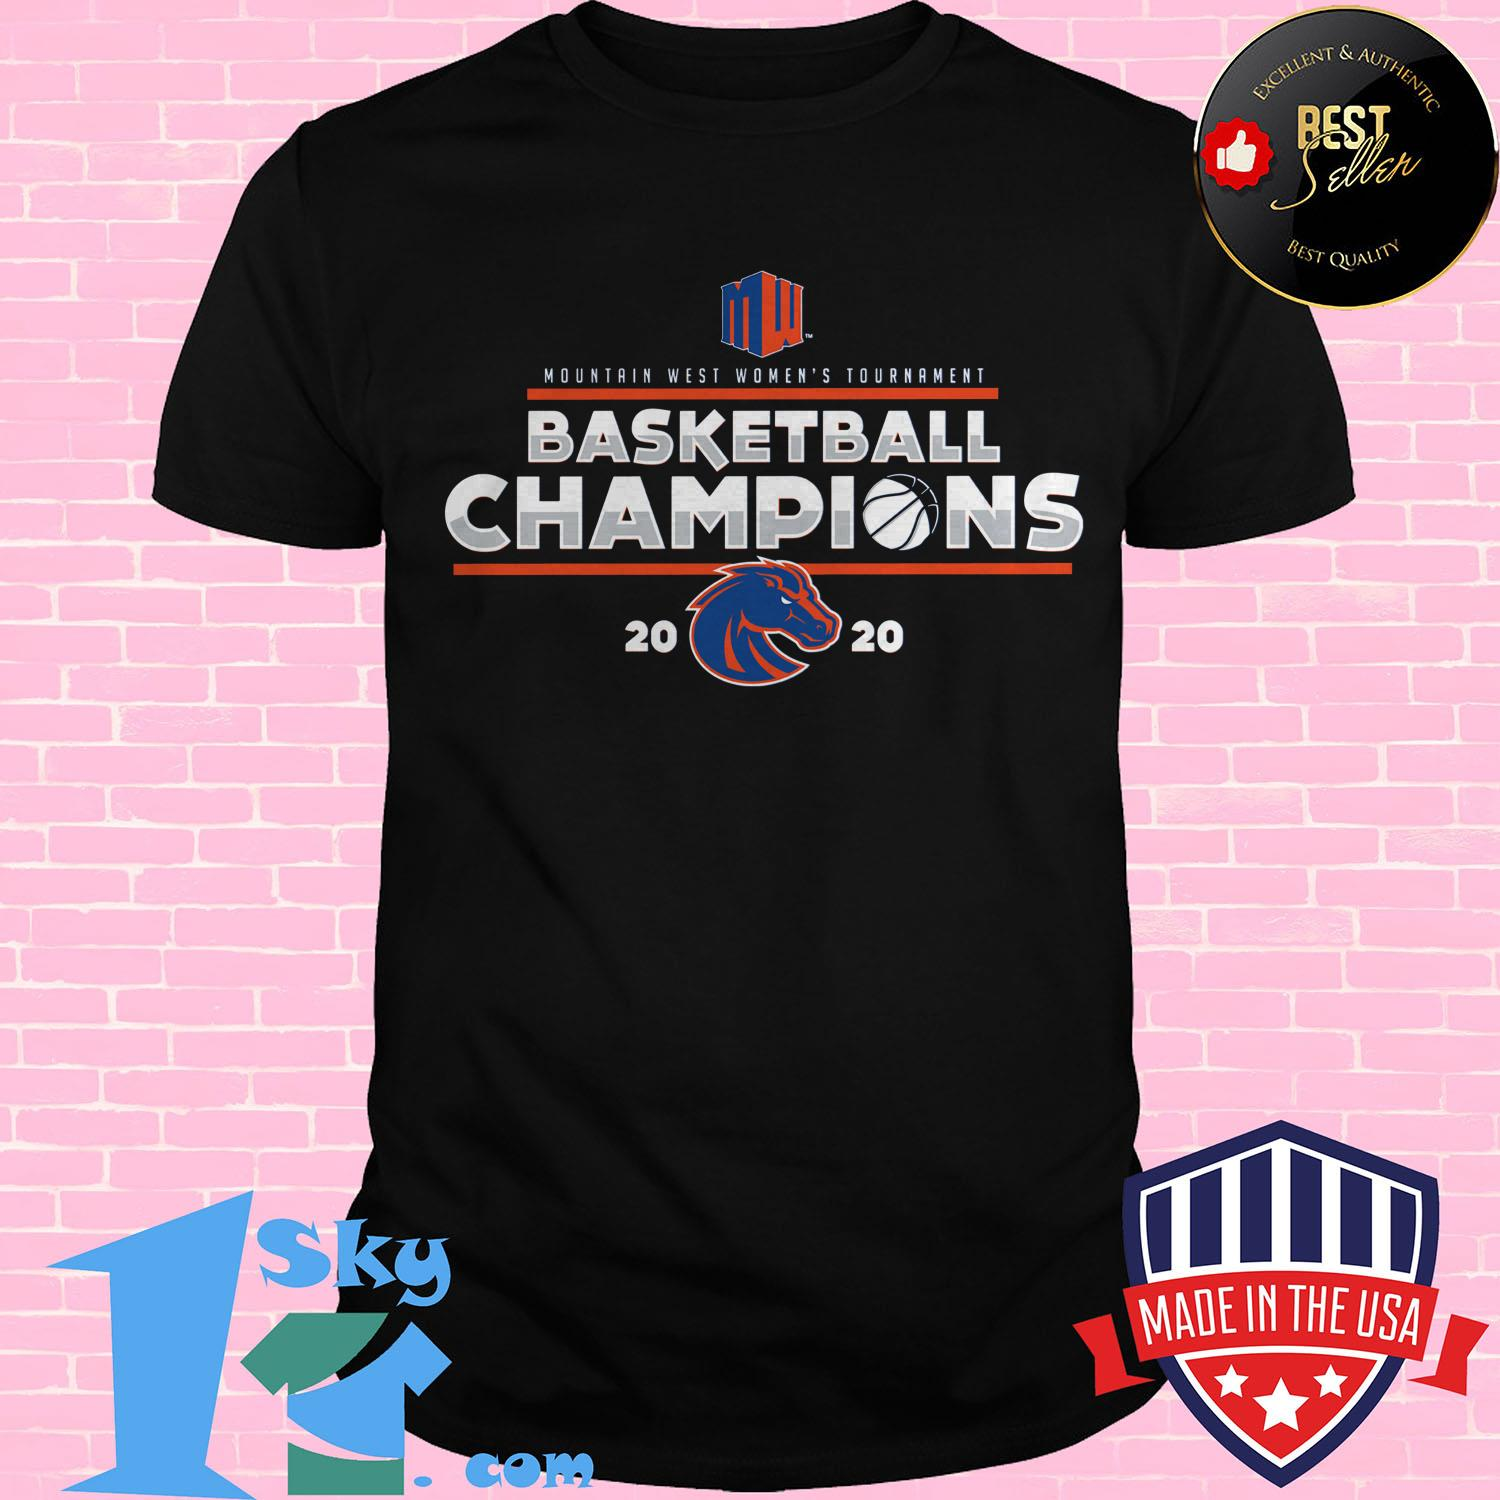 mountain west womens basketball conference tournament champions 2020 shirt - Mountain West Women's Basketball Conference Tournament Champions 2020 Shirt